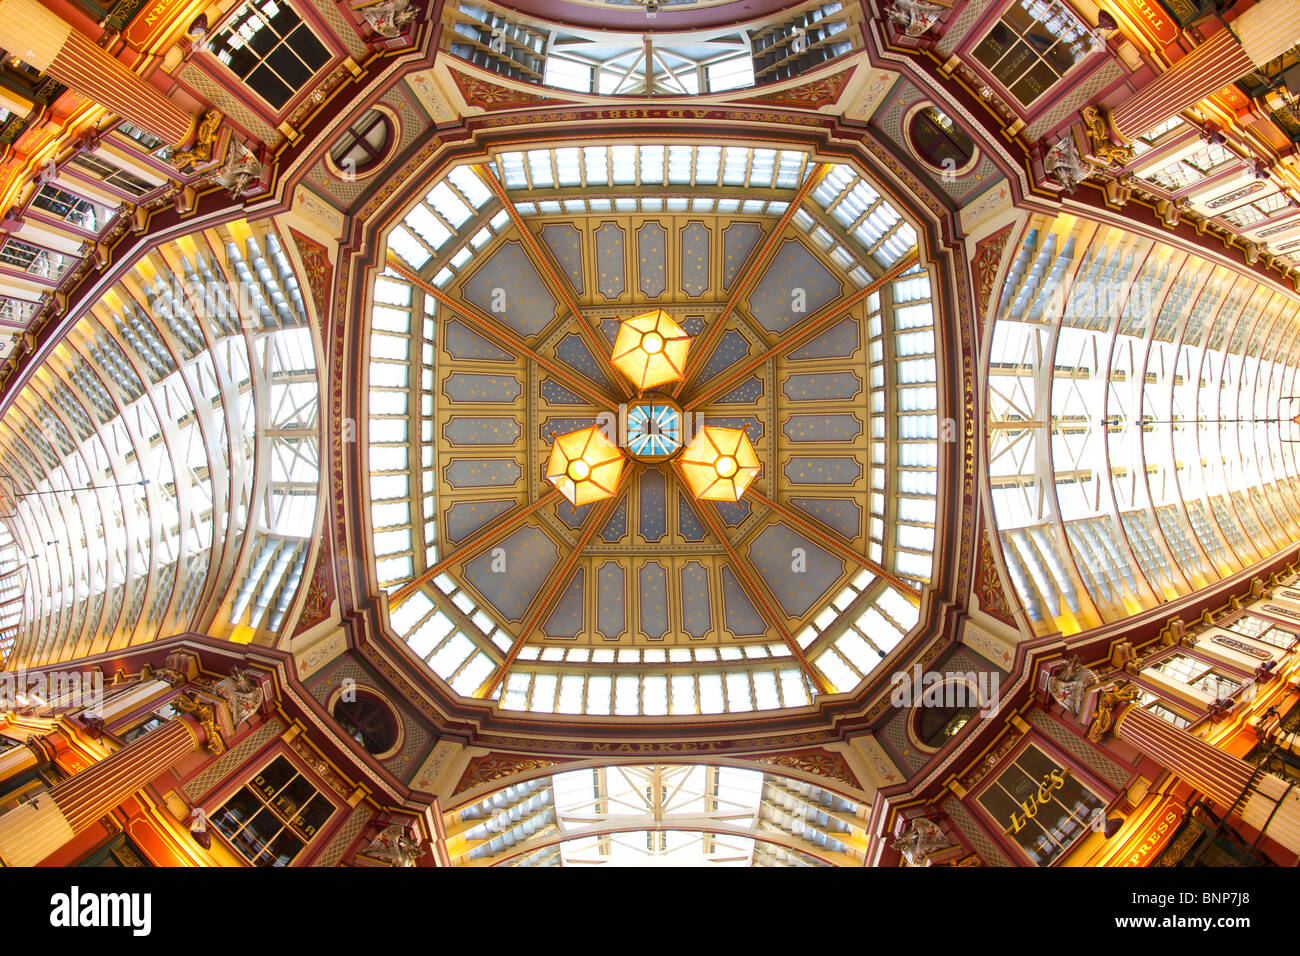 The roof of Leadenhall market in the city of London. - Stock Image